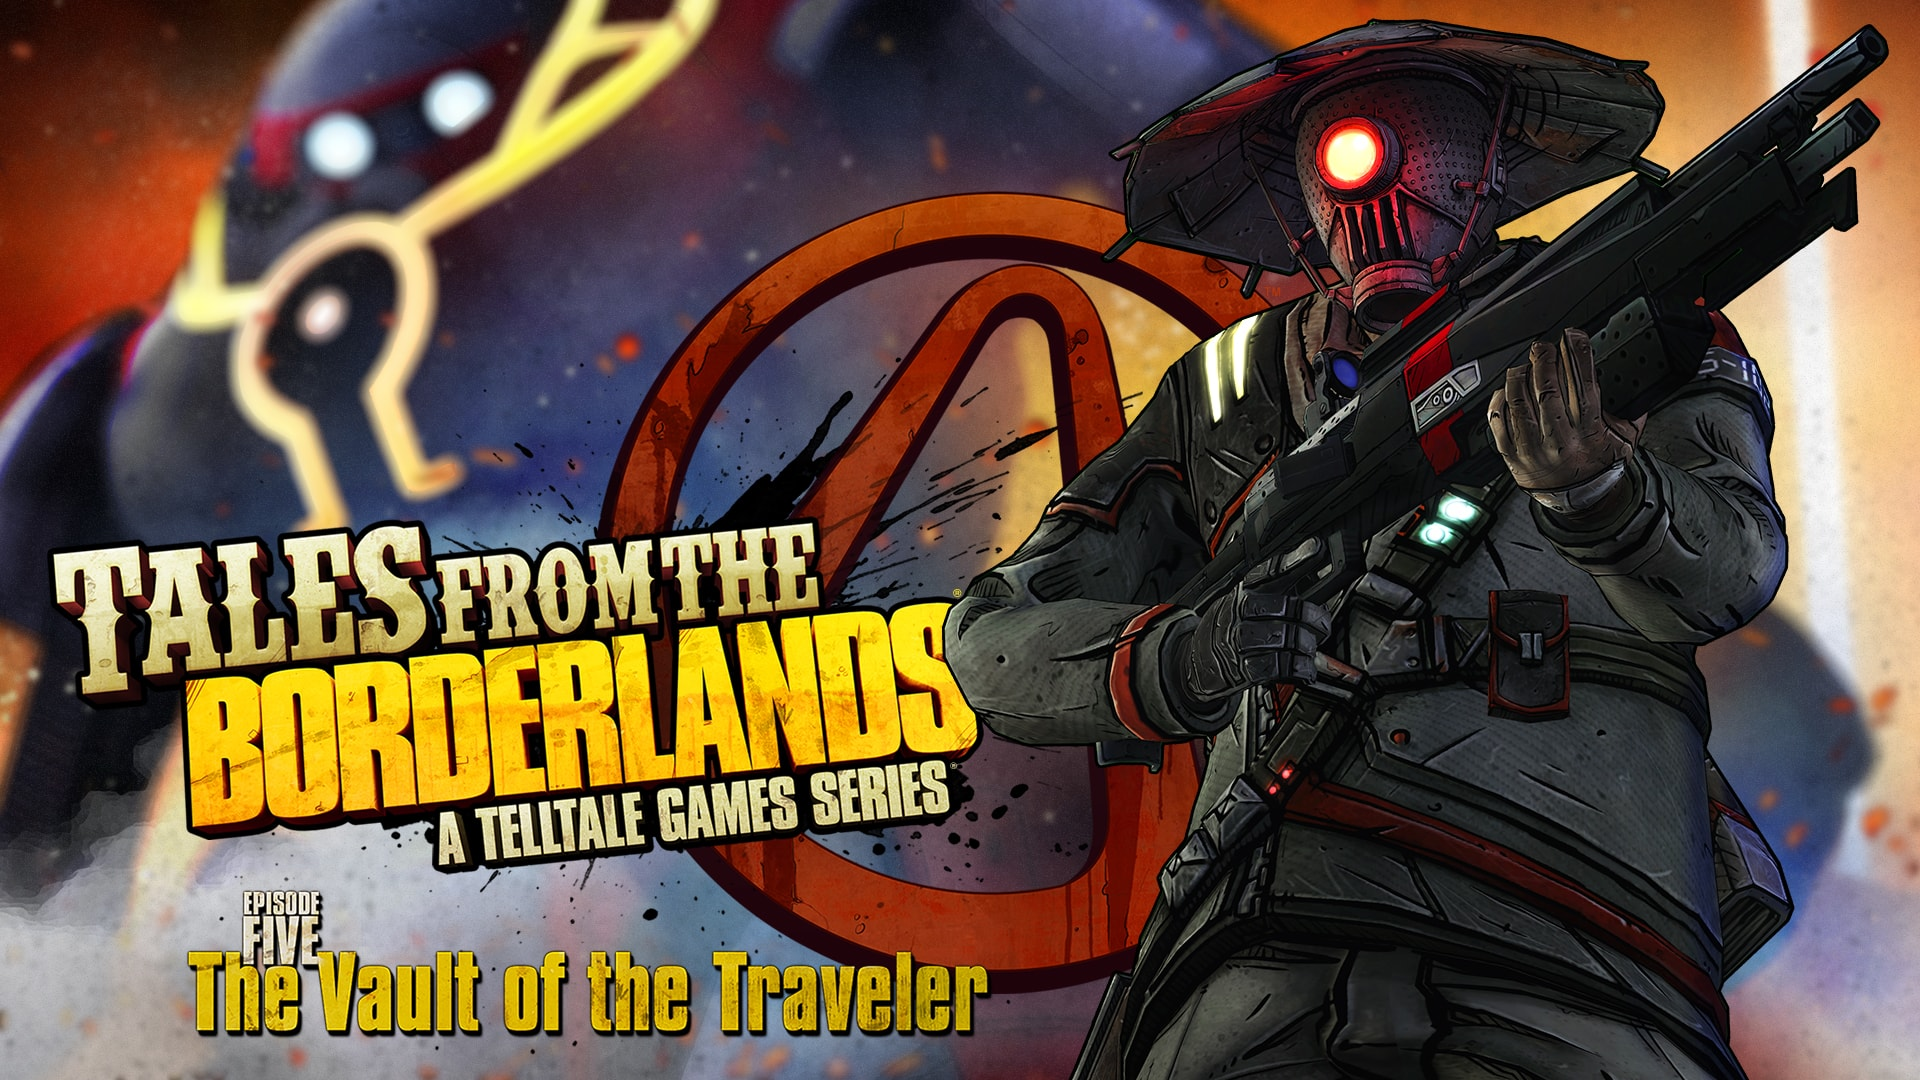 Tales from the Borderlands: Episode 5 - The Vault of the Traveler Background